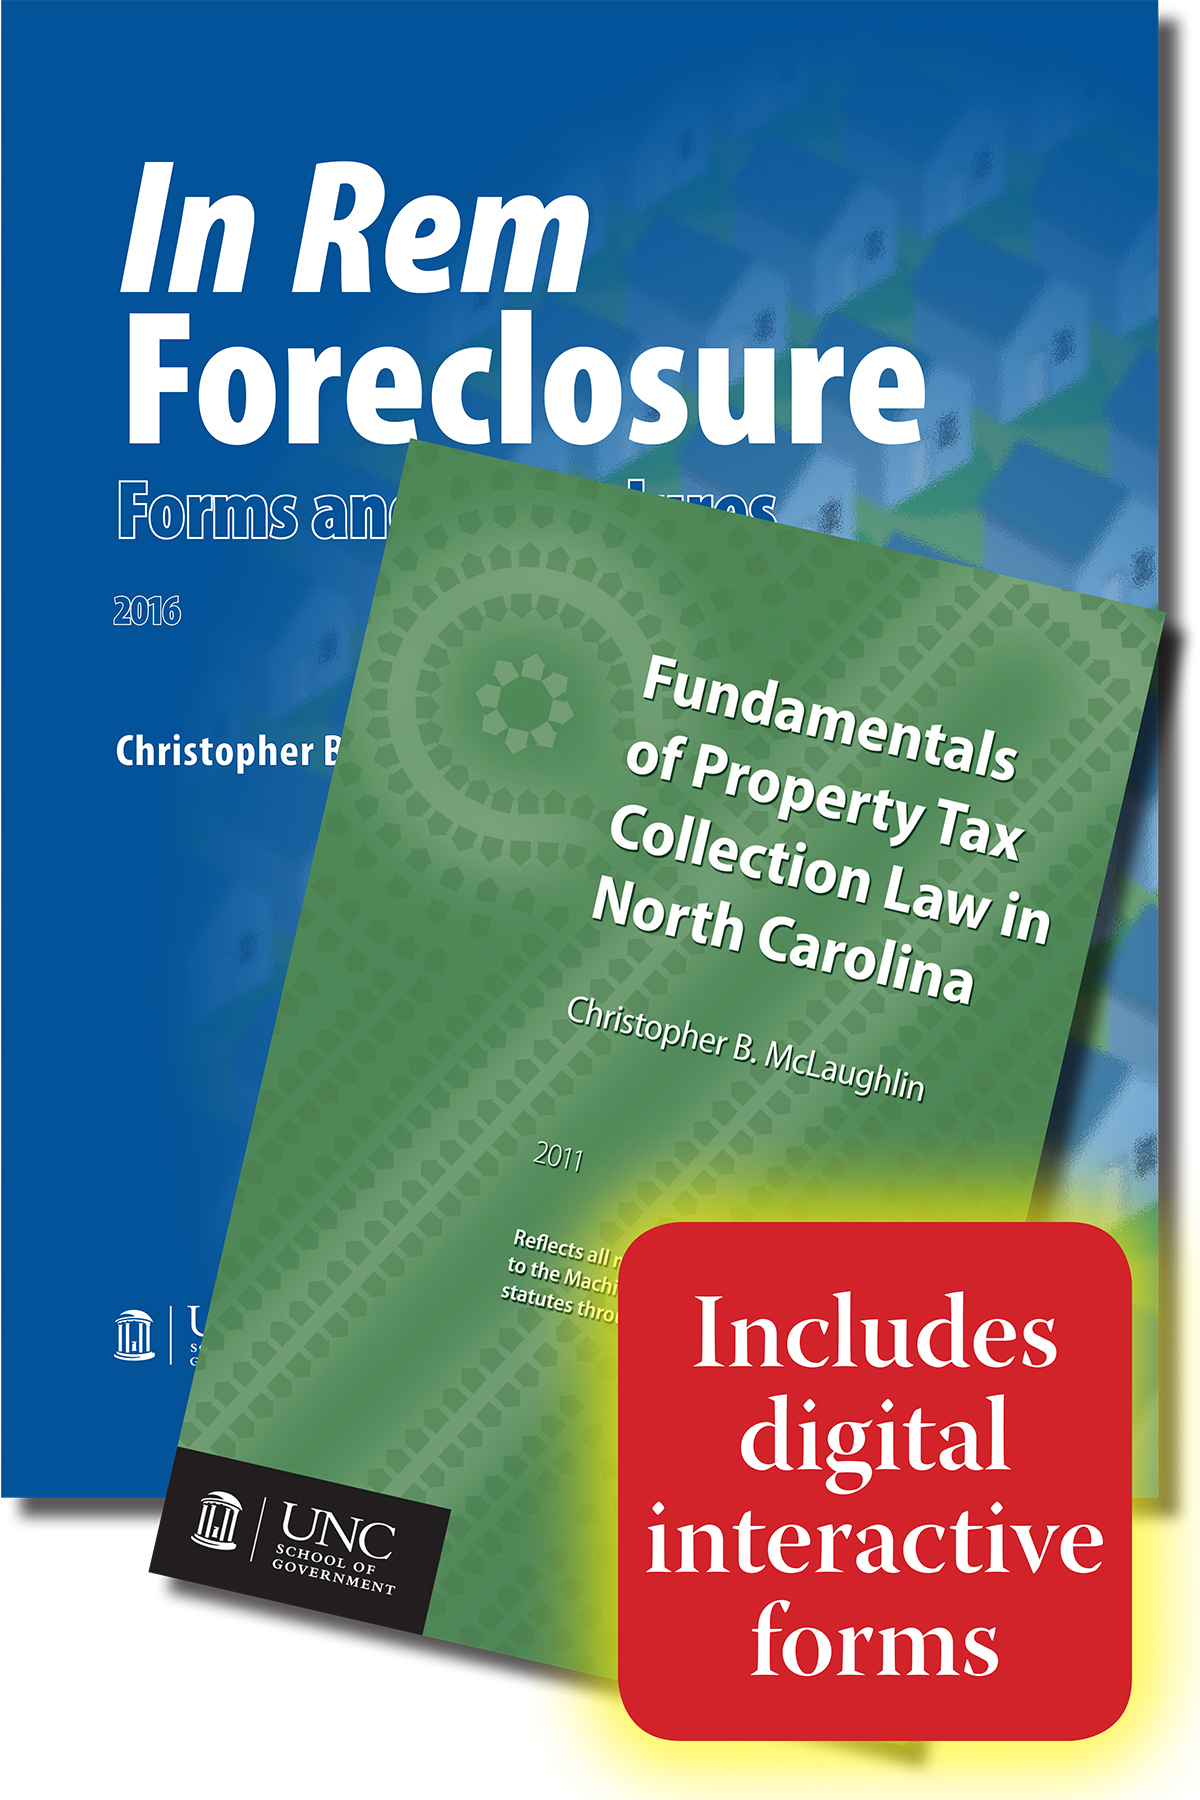 Cover image for In Rem Foreclosure Forms and Procedures and Fundamentals of Property Tax Collection Law in North Carolina